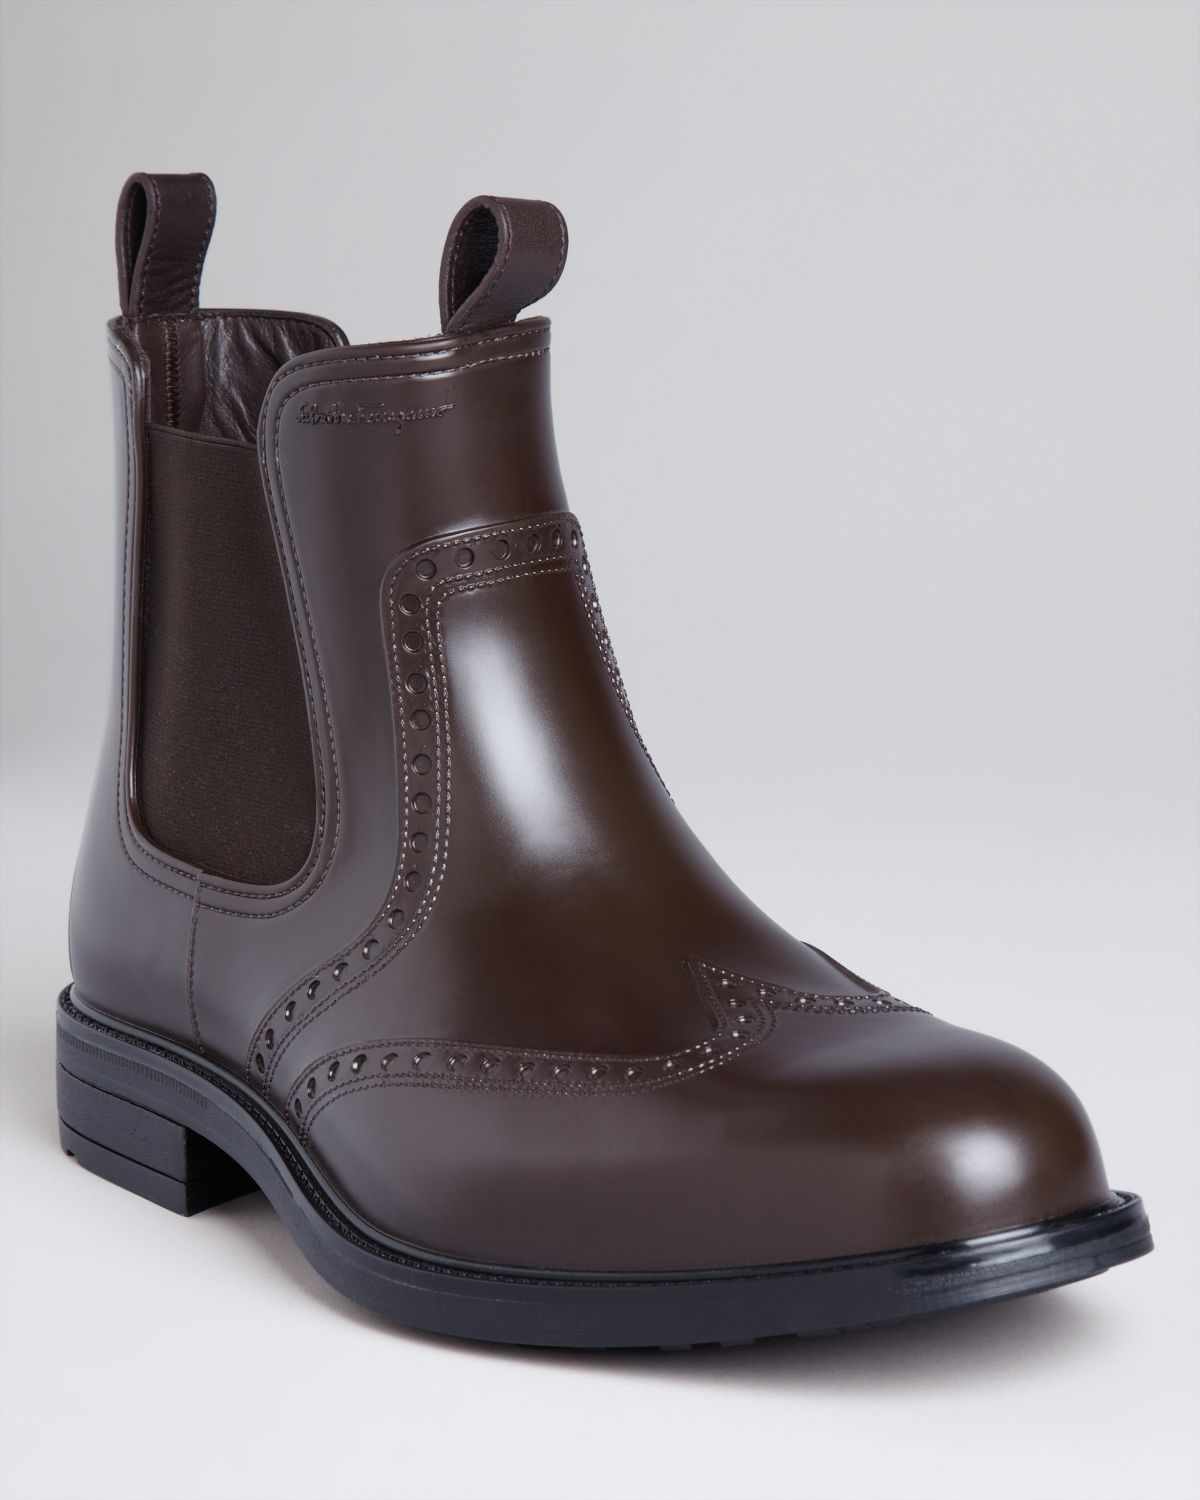 Ferragamo Boston Wingtip Boots In Brown For Men Hickory